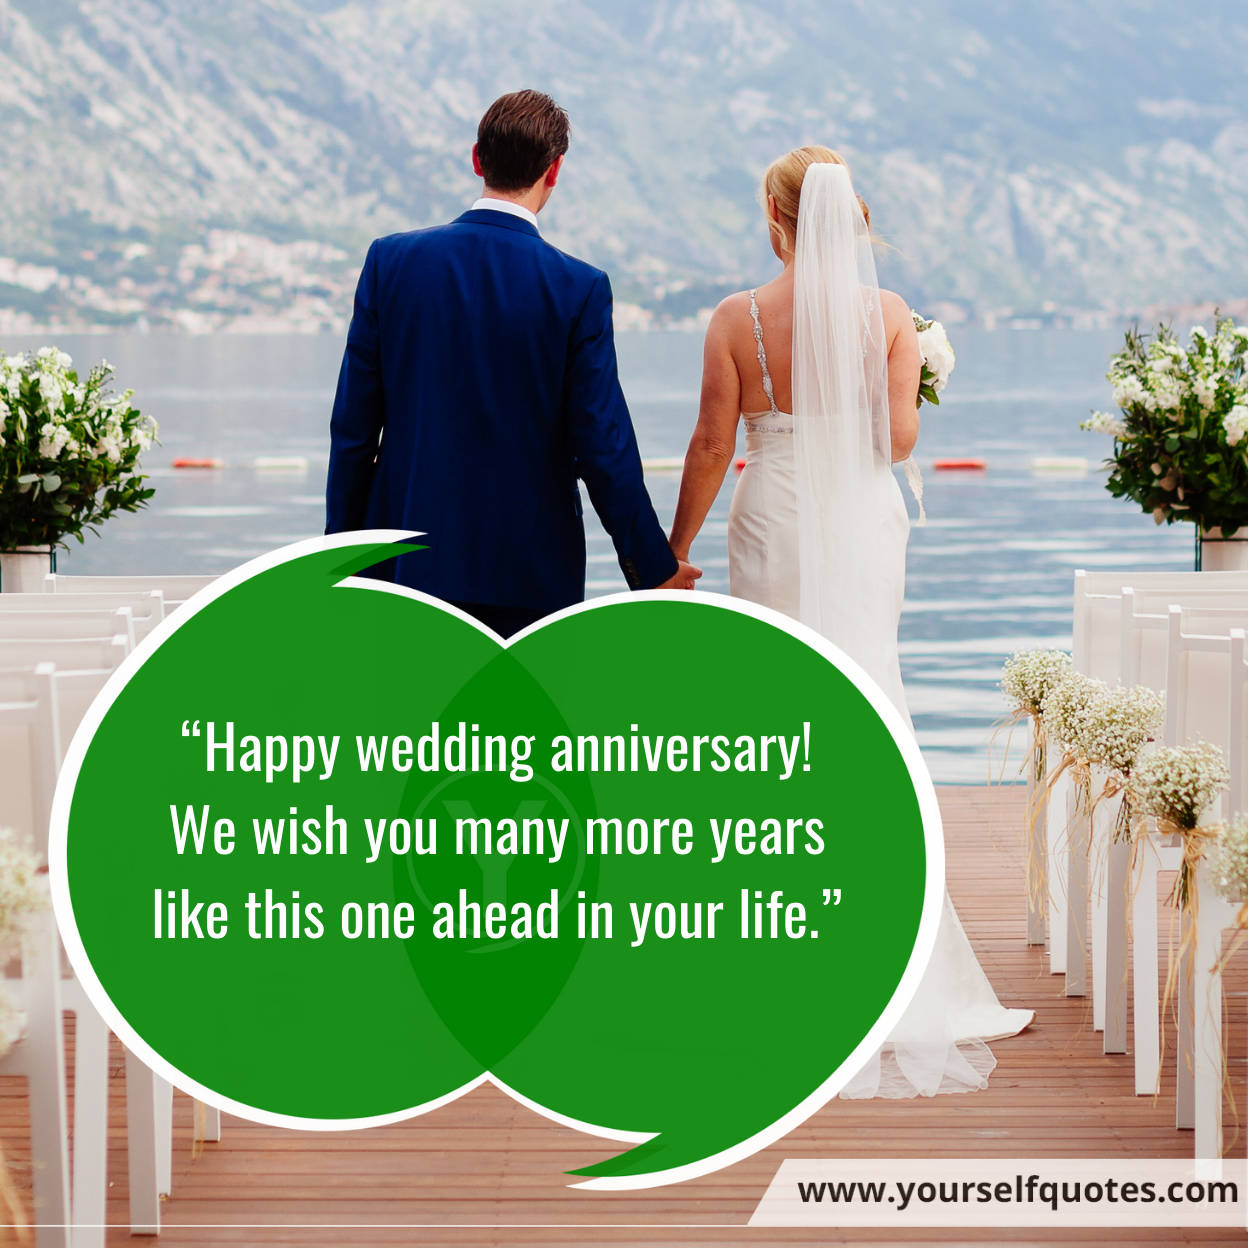 Wedding Anniversary Wishes With Images